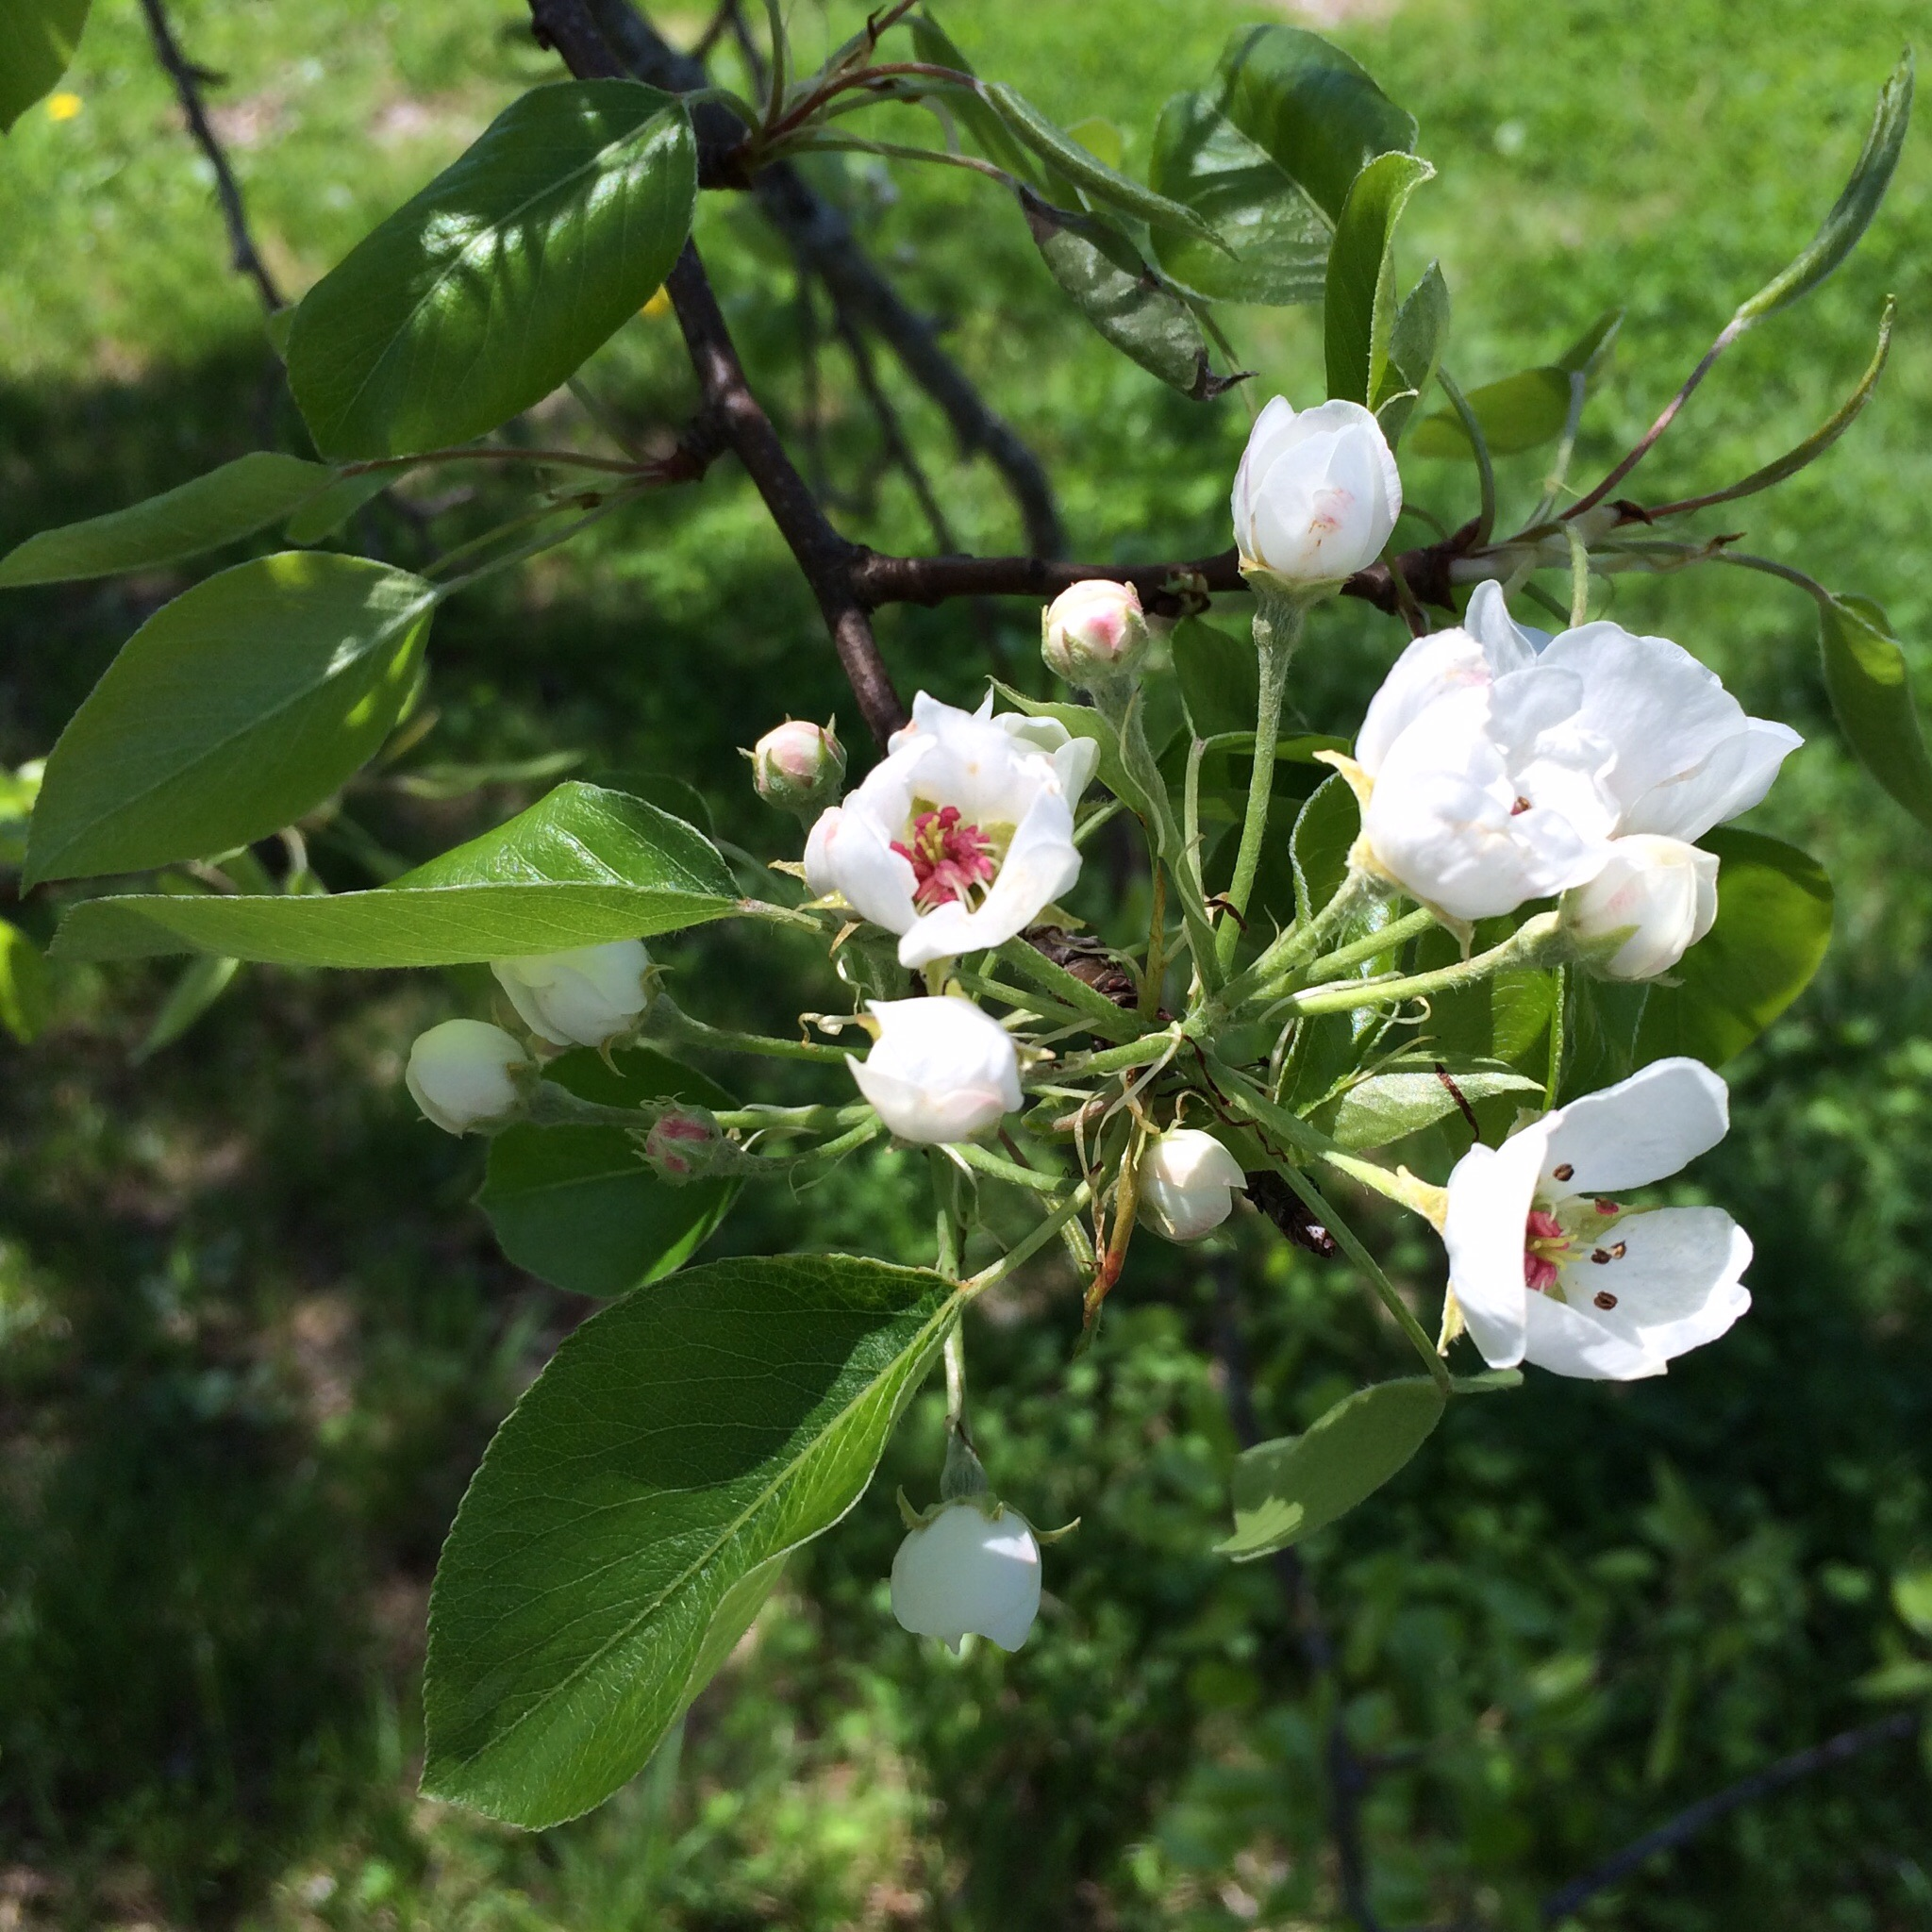 Blossoms on the pear tree beginning to open on Sunday.